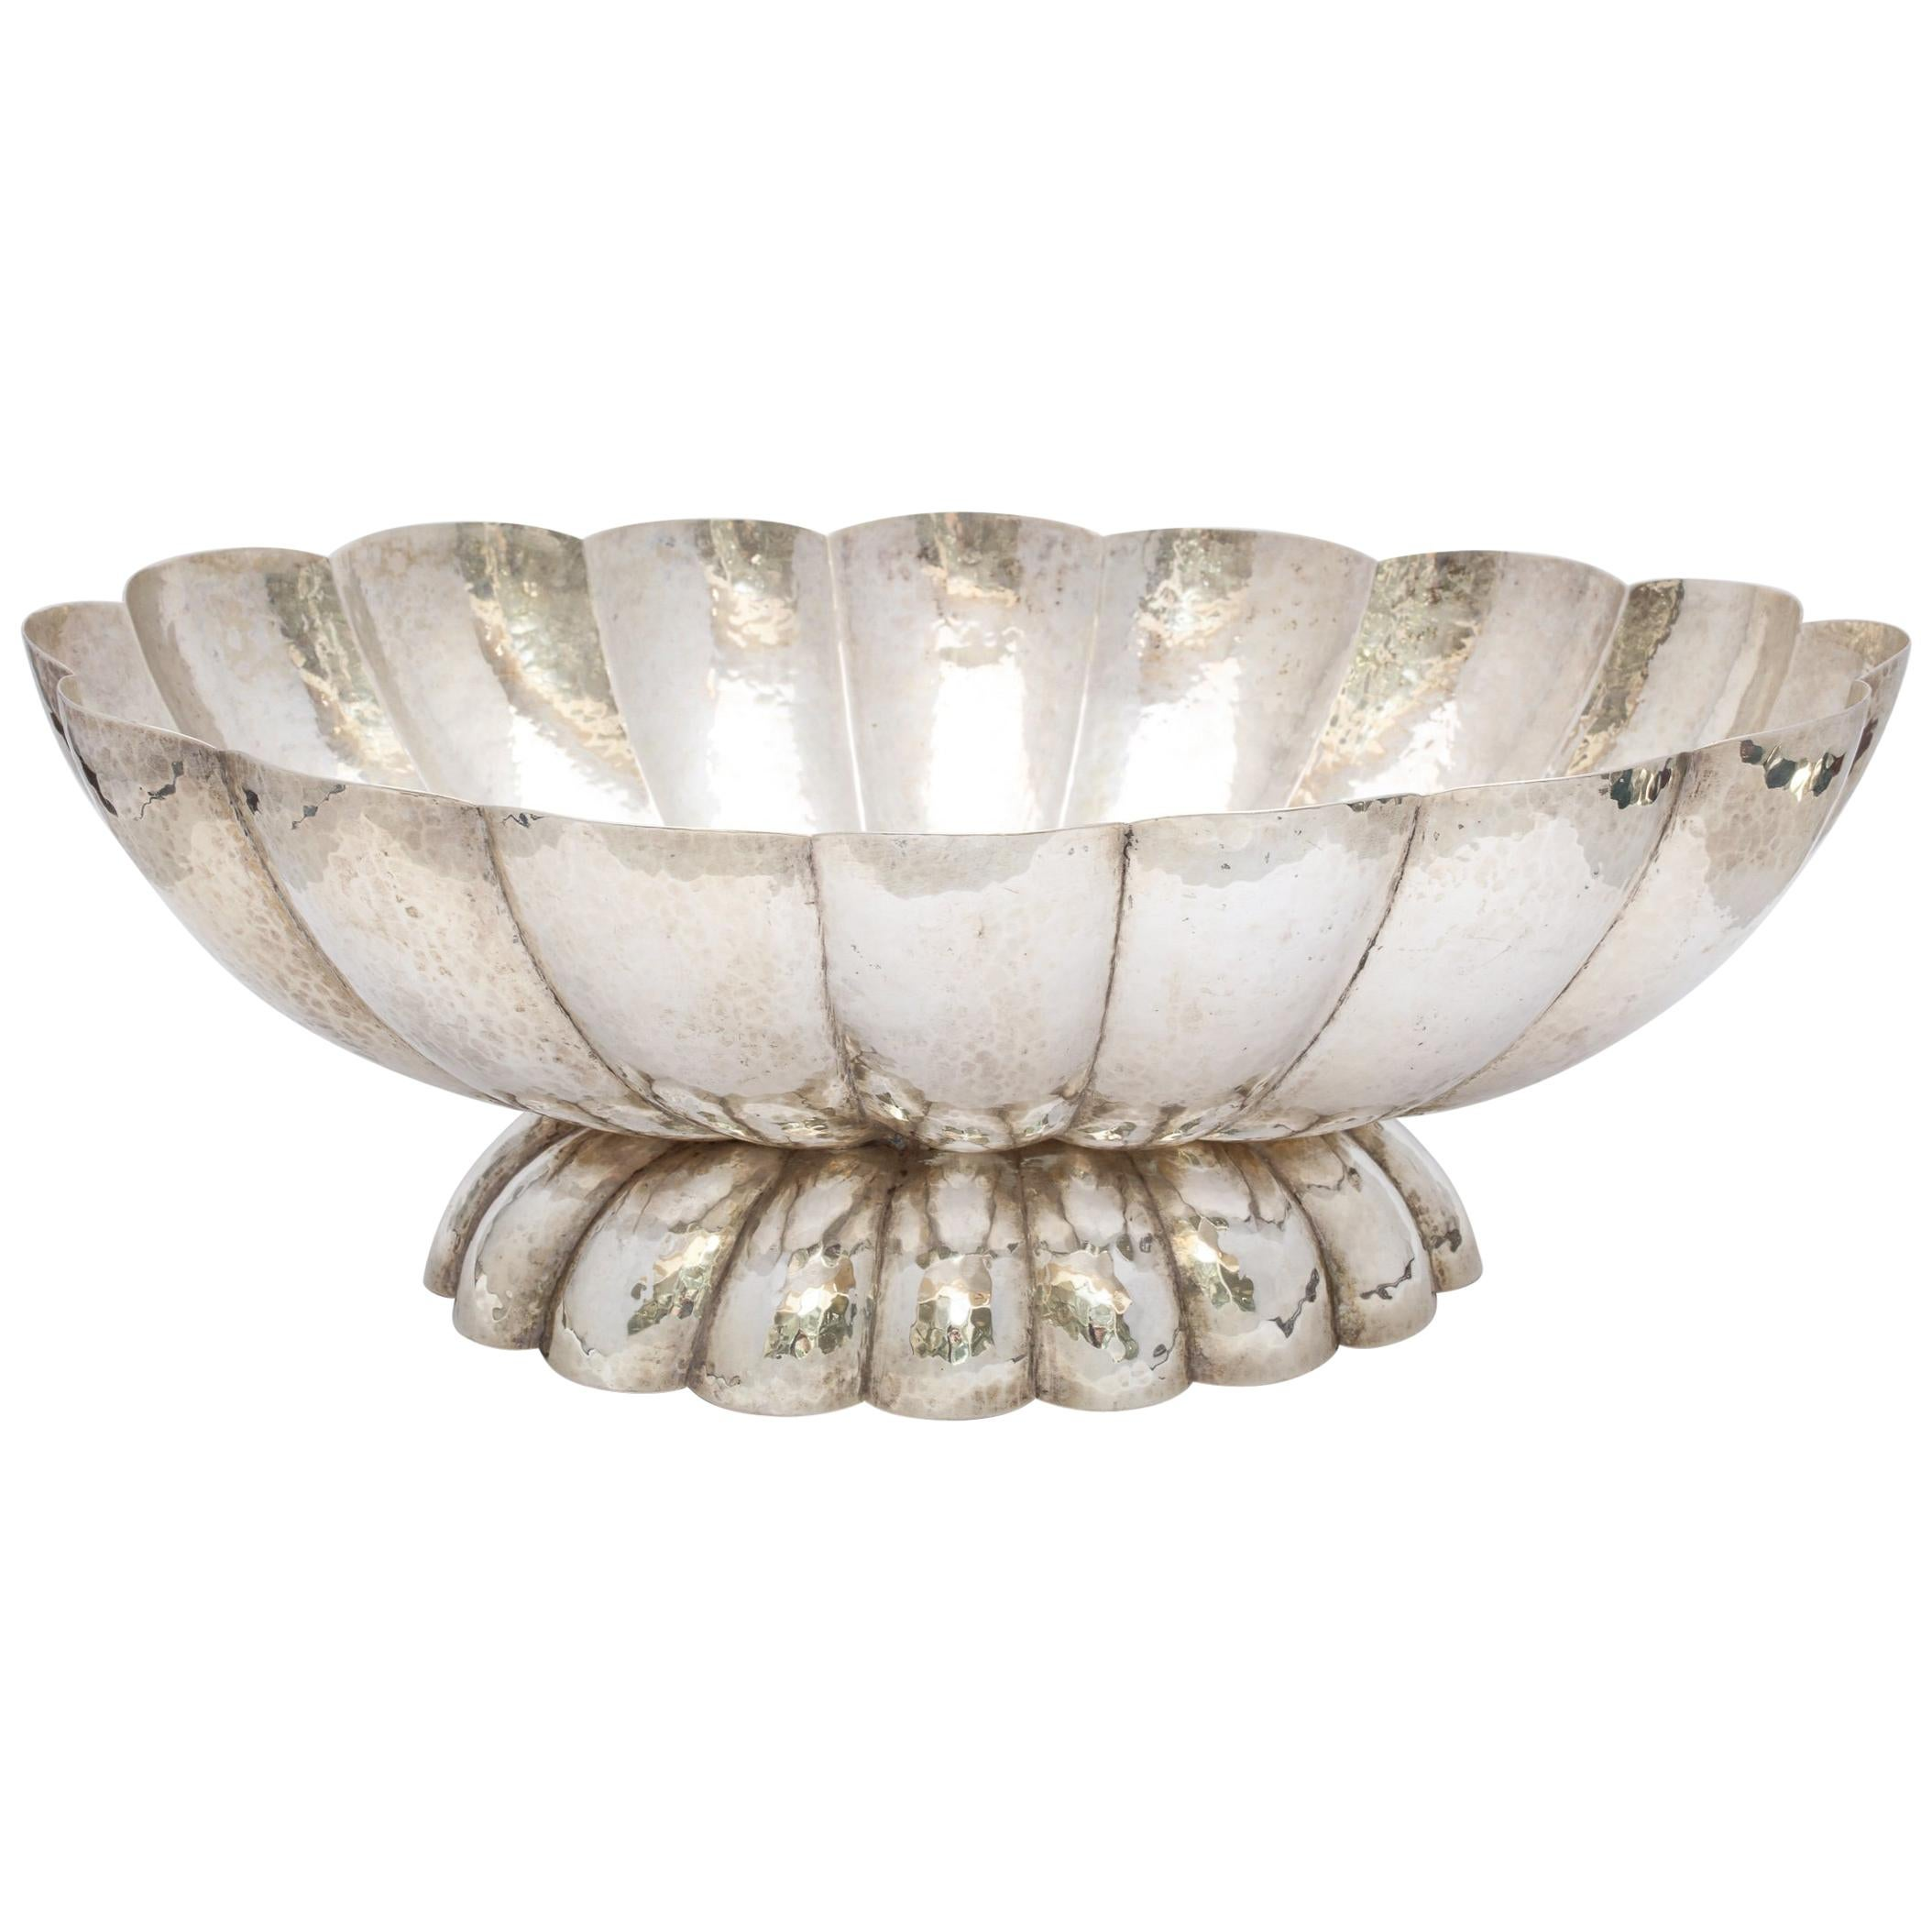 Art Deco Continental Silver '.800' Centerpiece Bowl by Bruder Frank